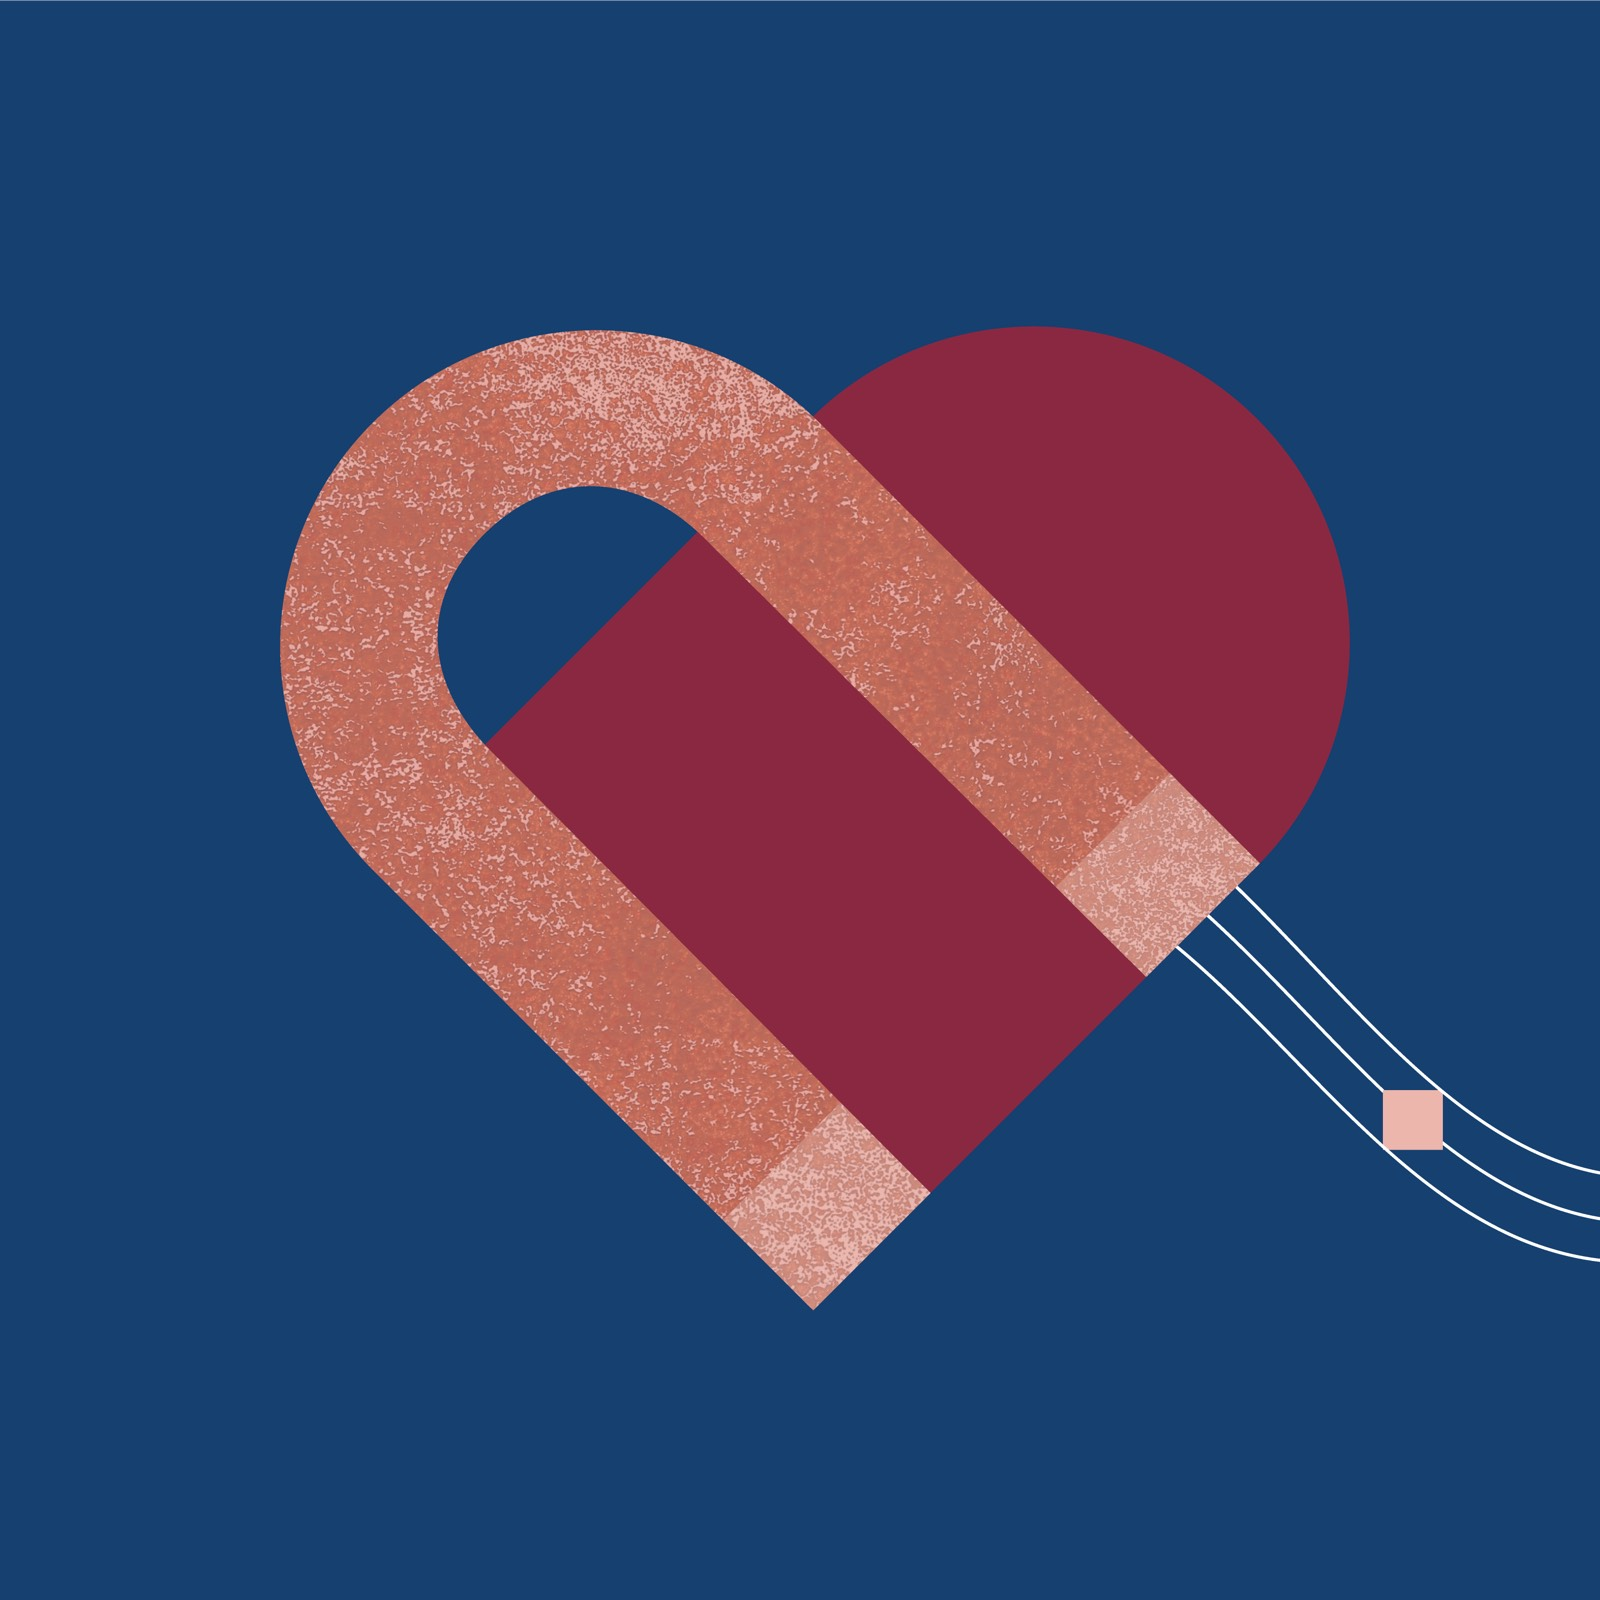 Abstract illustration of heart and magnet that signifies community in the workplace.